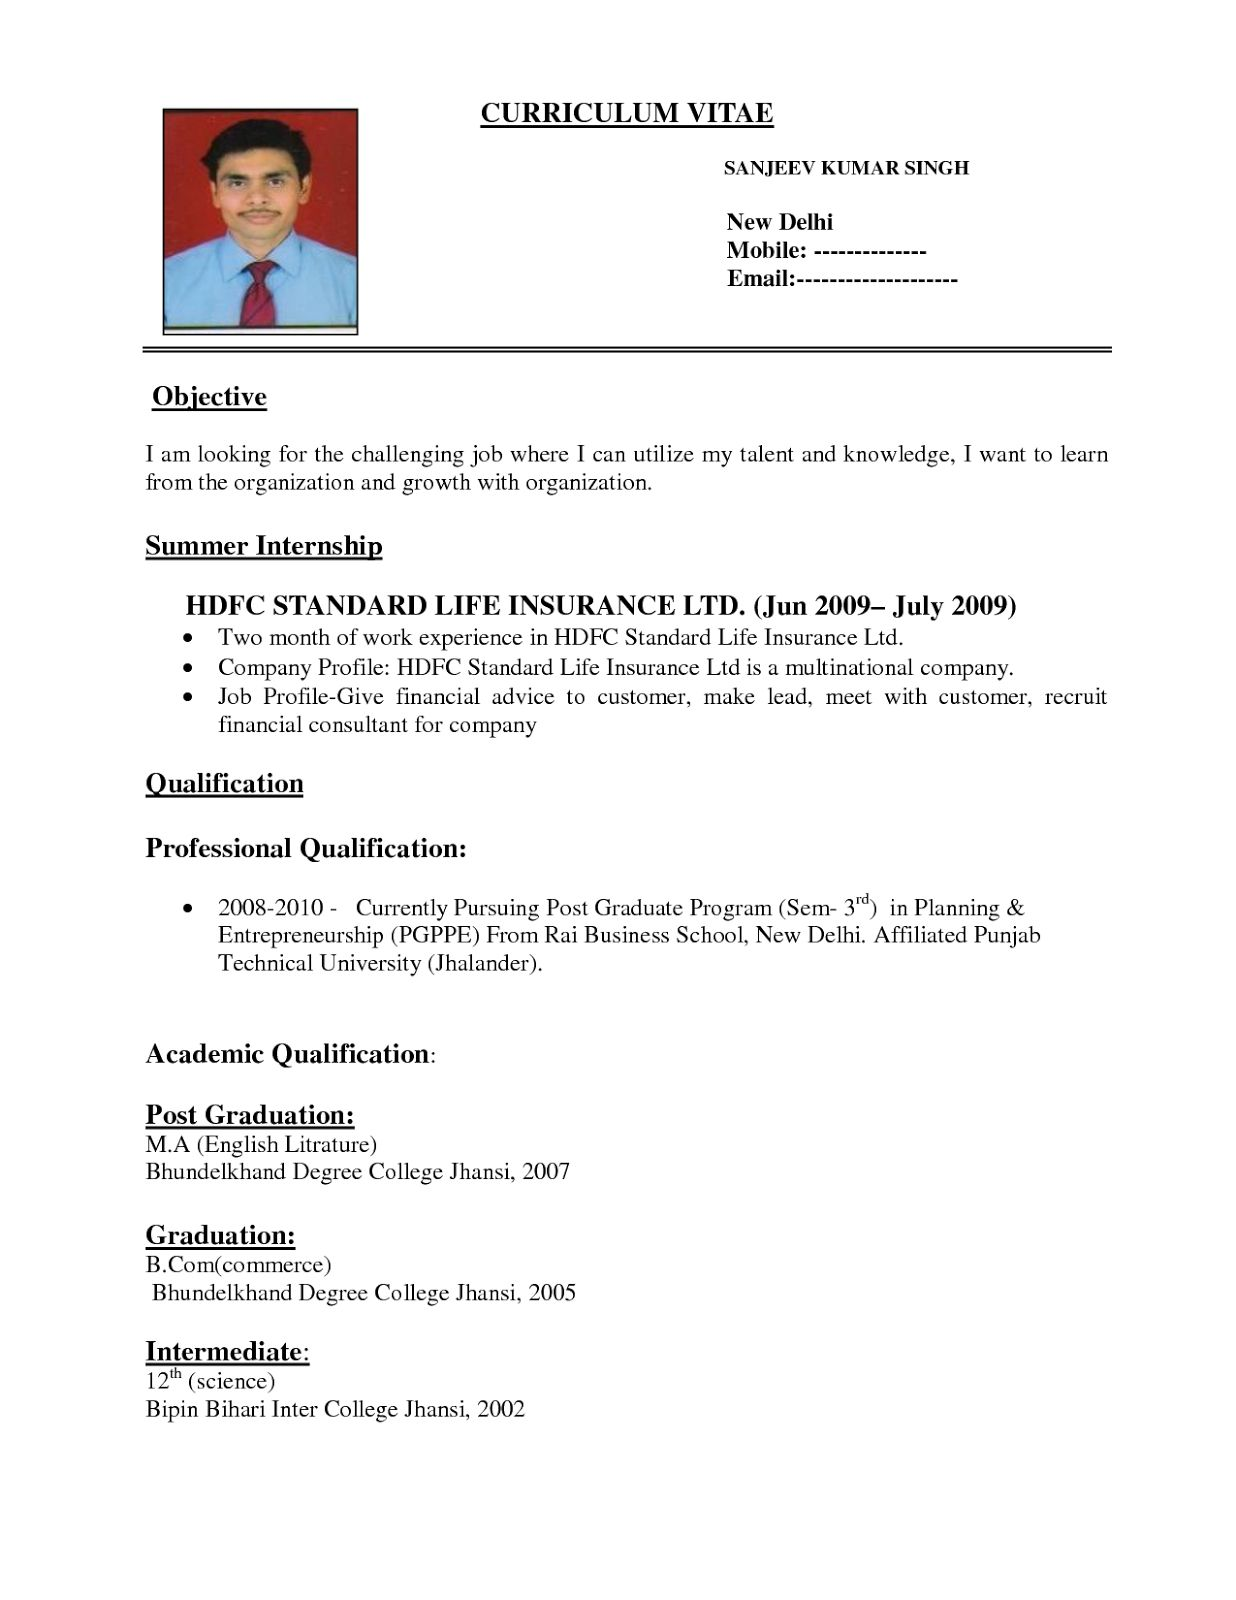 Www Resume Com Format Pin By Patricia Johnson On Fashion Stylist Tips And Portafolio